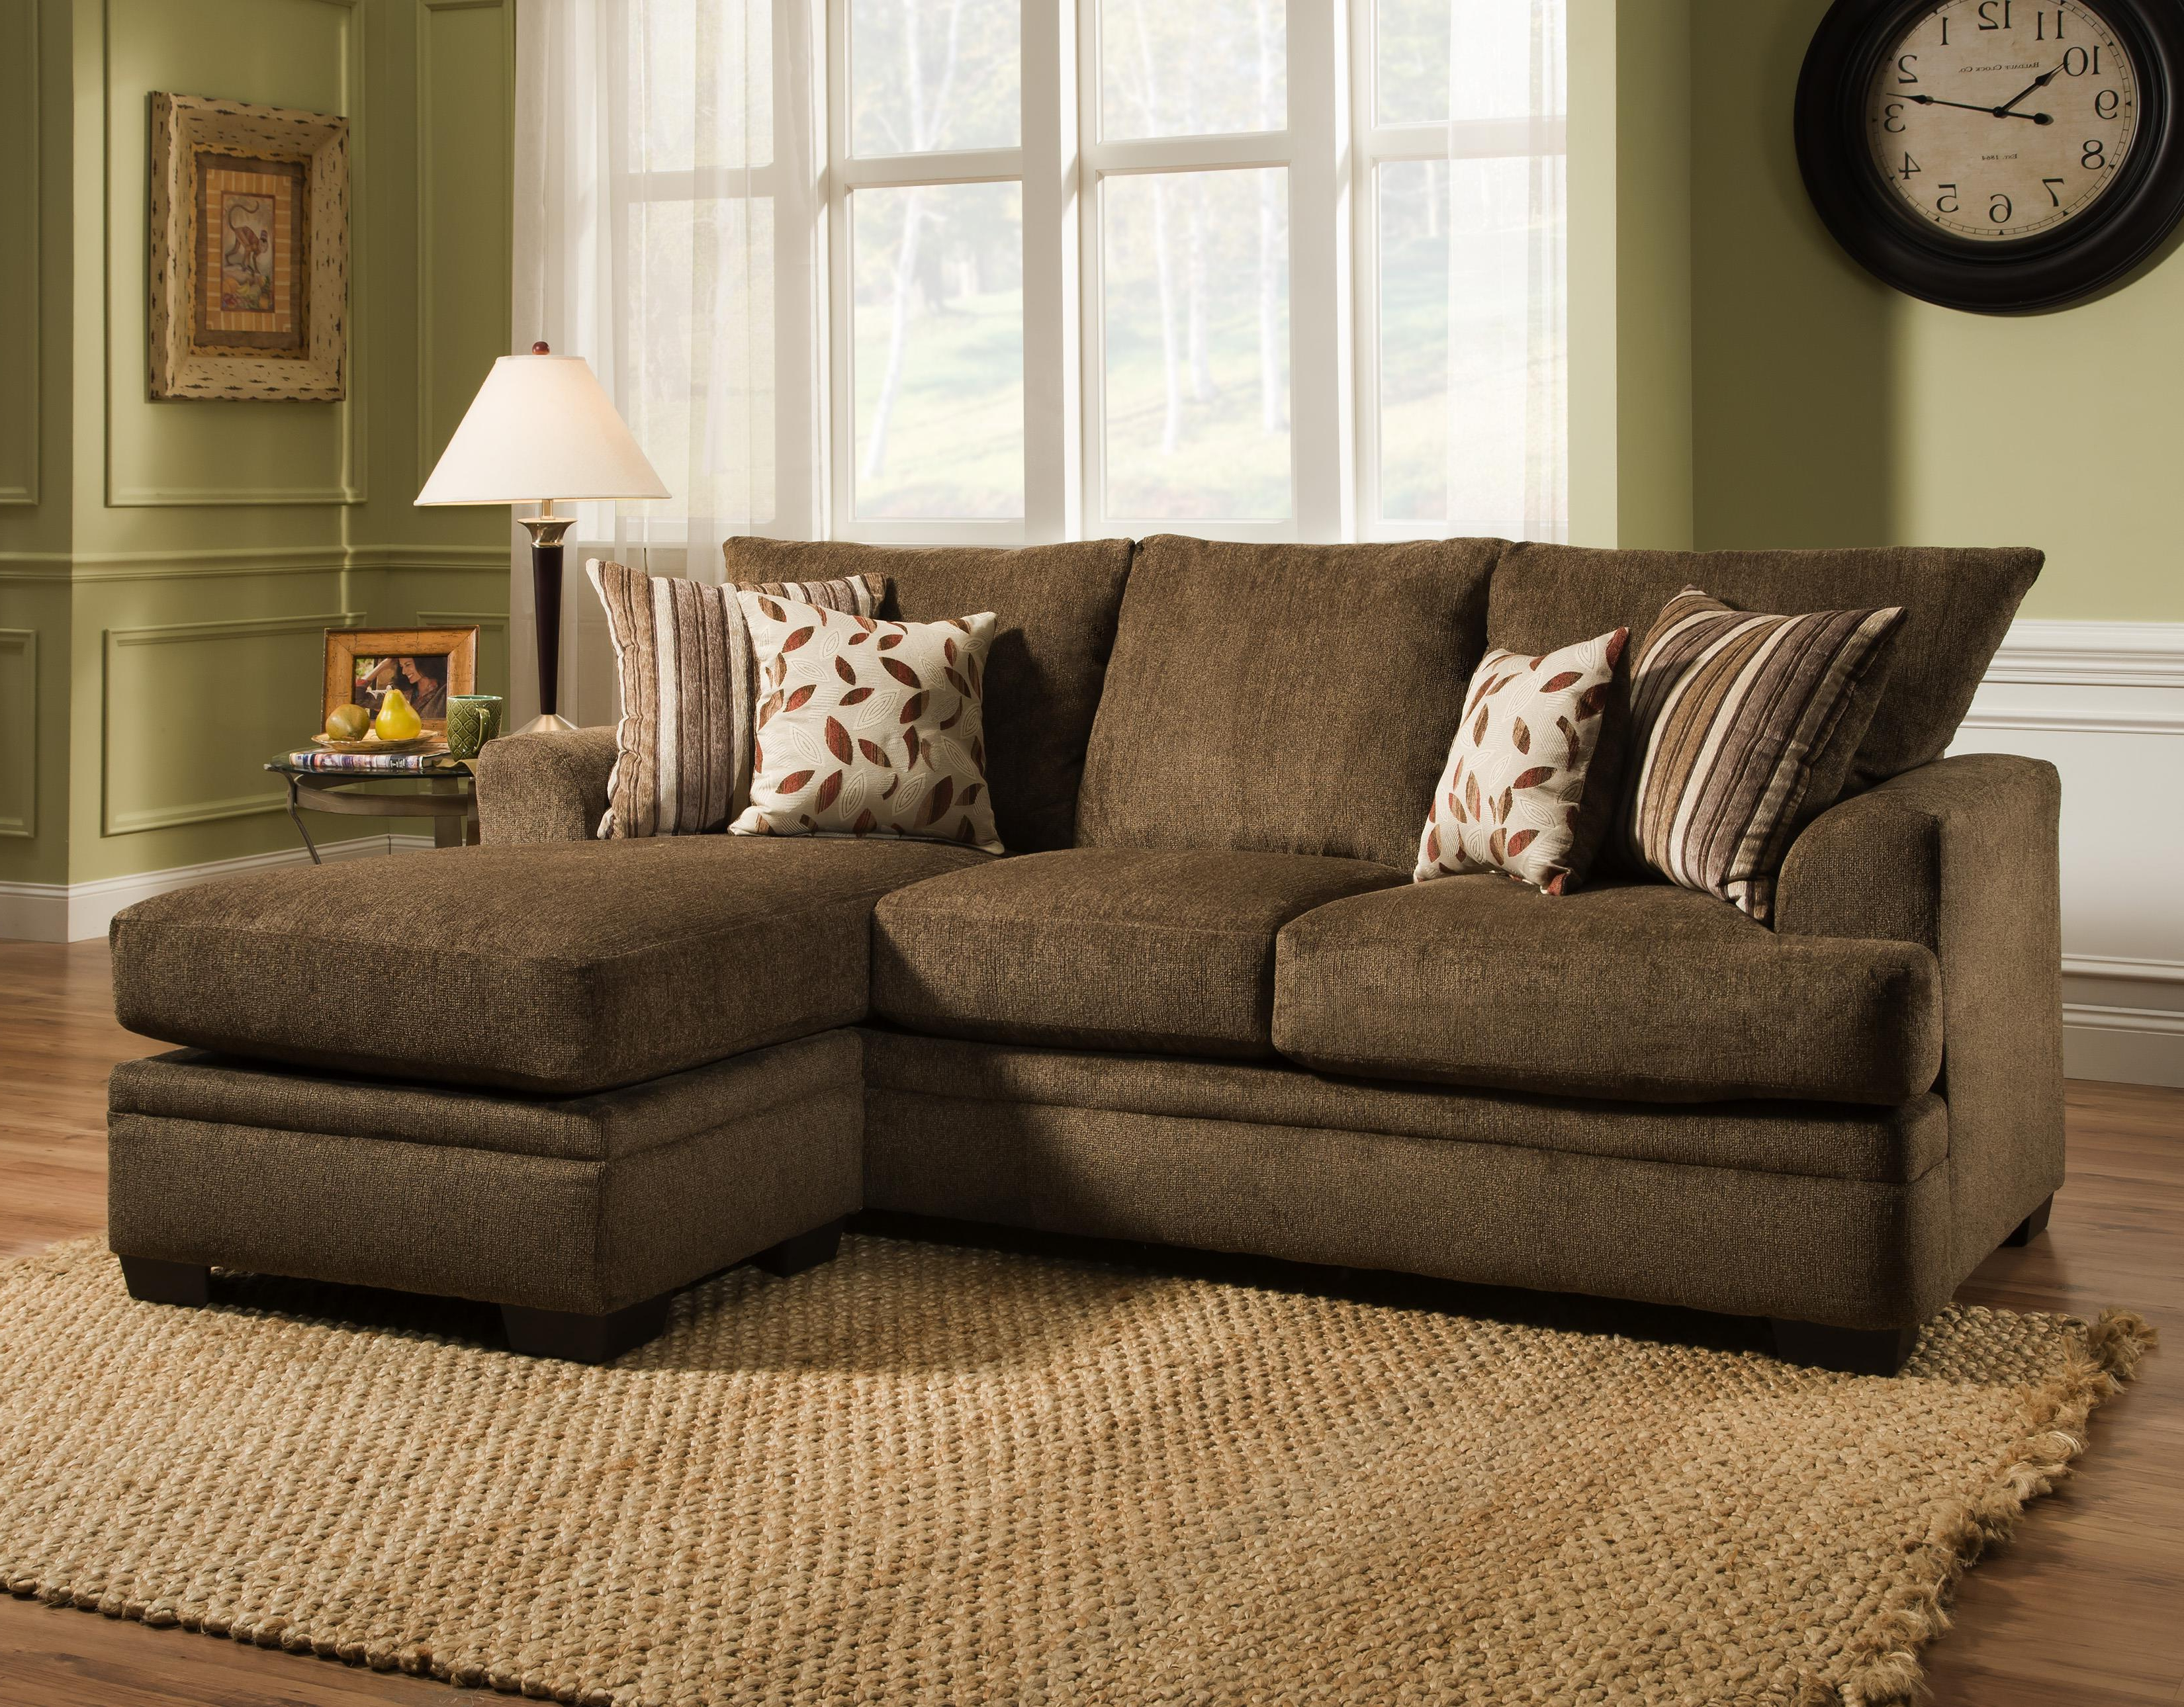 Newest American Furniture 3650 3657 1661 Sofa Chaise (View 16 of 20)